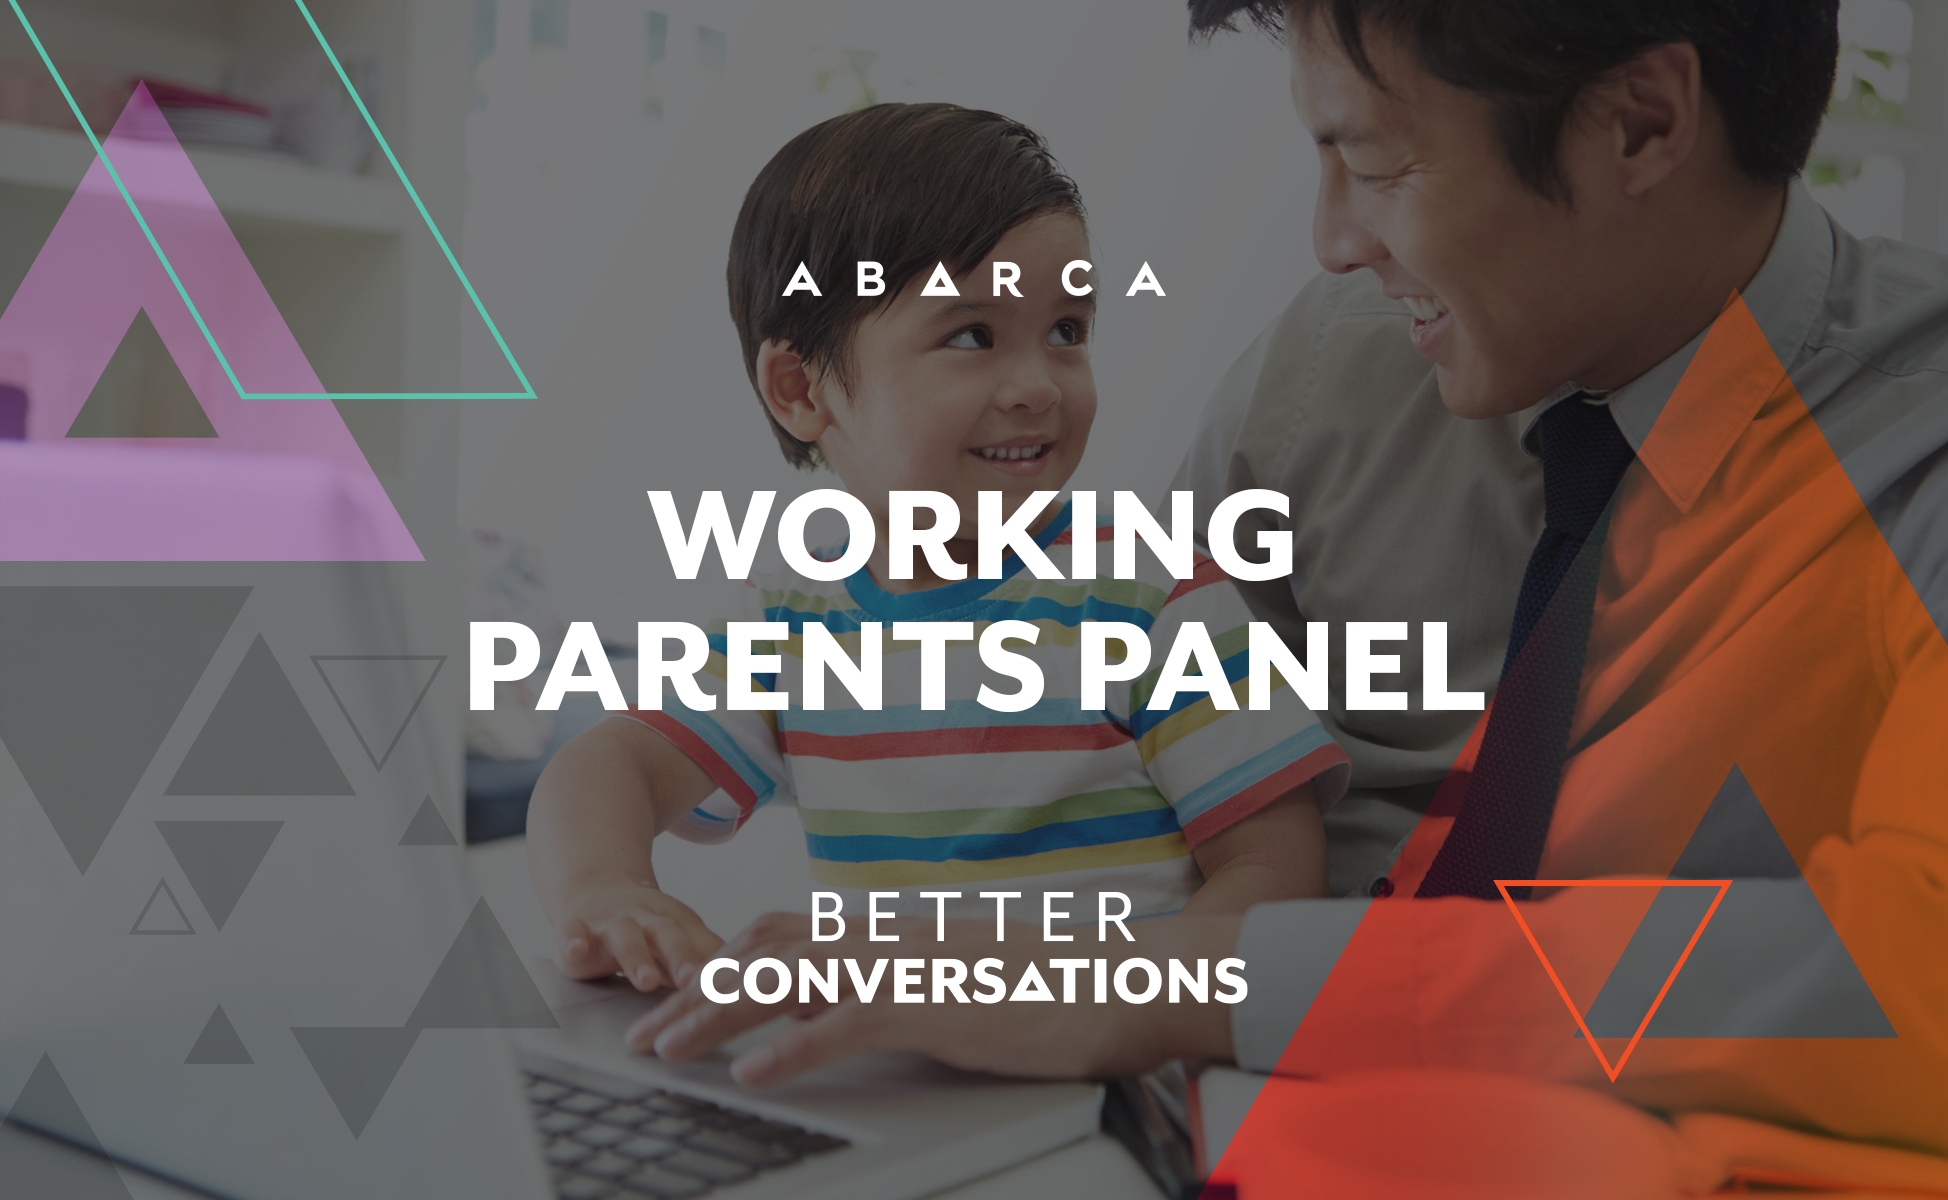 Abarca's first Better Conversations panel on Working Parents